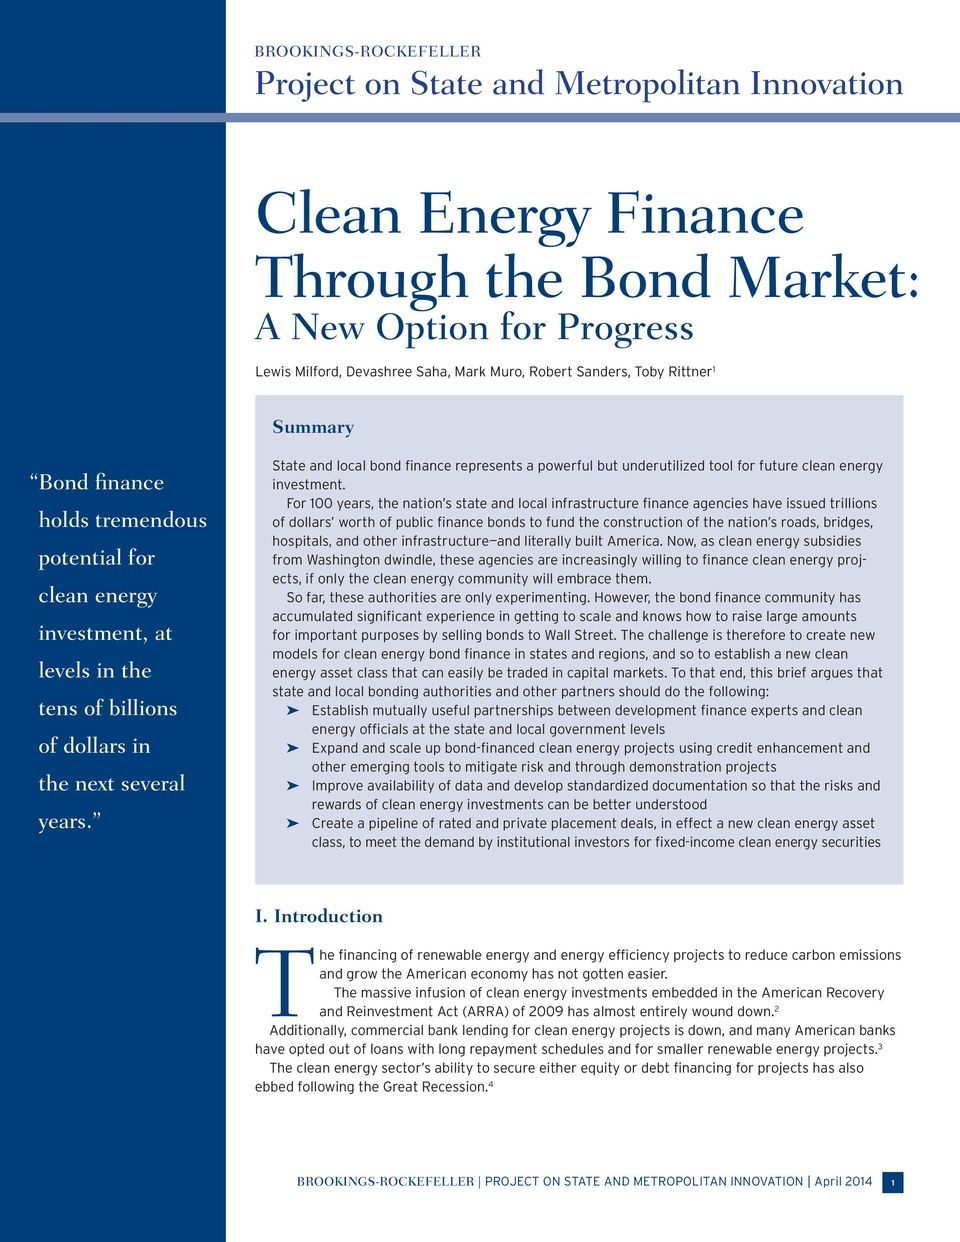 State and local bond finance represents a powerful but underutilized tool for future clean energy investment.